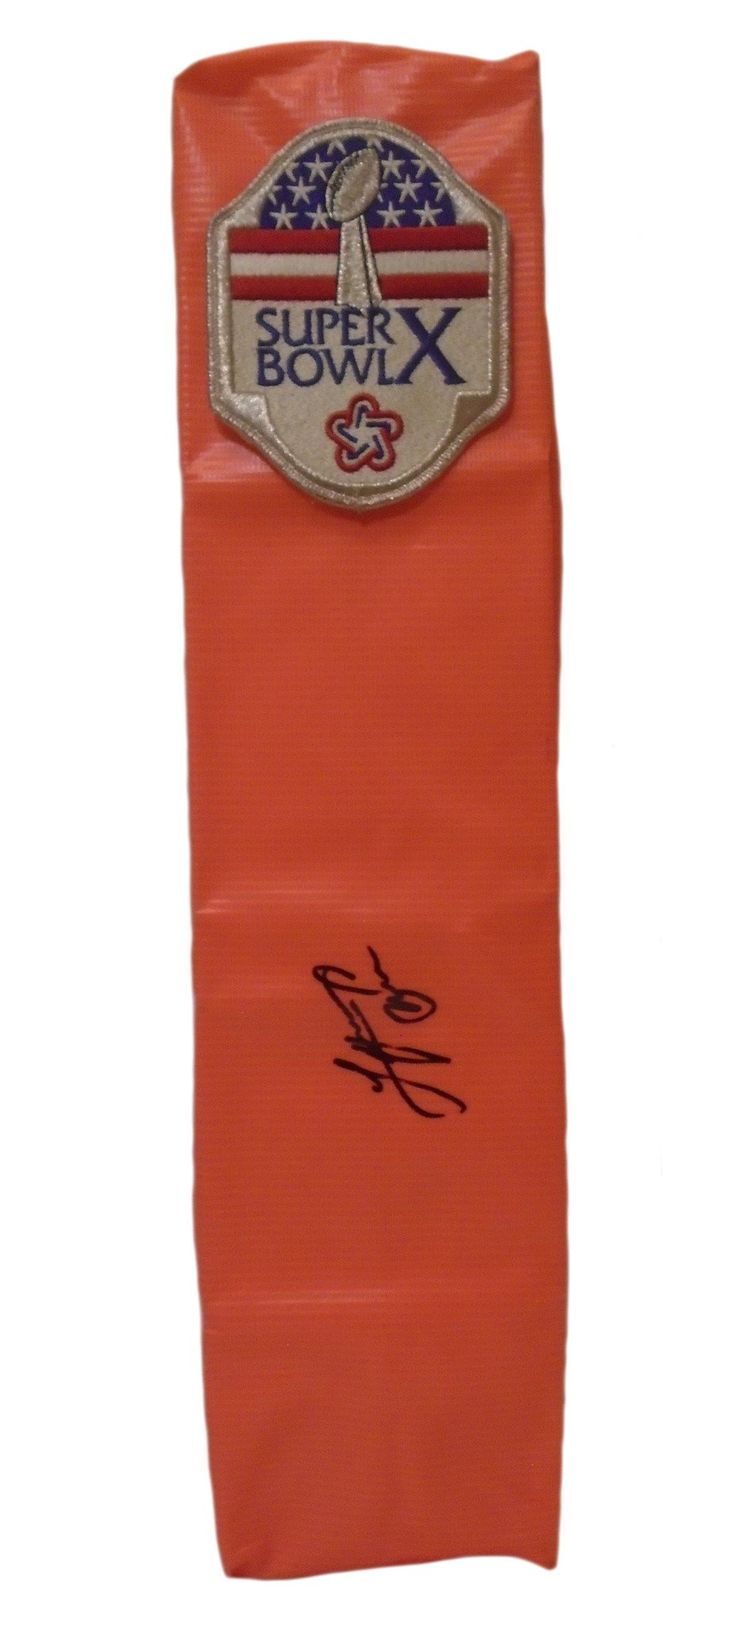 Lynn Swann Autographed Pittsburgh Steelers Super Bowl X Full Size Football End Zone. This is a brand-new custom Lynn Swann signed Super Bowl X full size football end zone pylon.  This pylon measures 4 inches (Width)  X 4 inches (Length) X 18 inches (Height).  Lynn signed the pylon in black sharpie. Check out the photo of Lynn signing for us. ** Proof photo is included for free with purchase. Please click on images to enlarge. Please browse our website for additional NFL & NCAA…